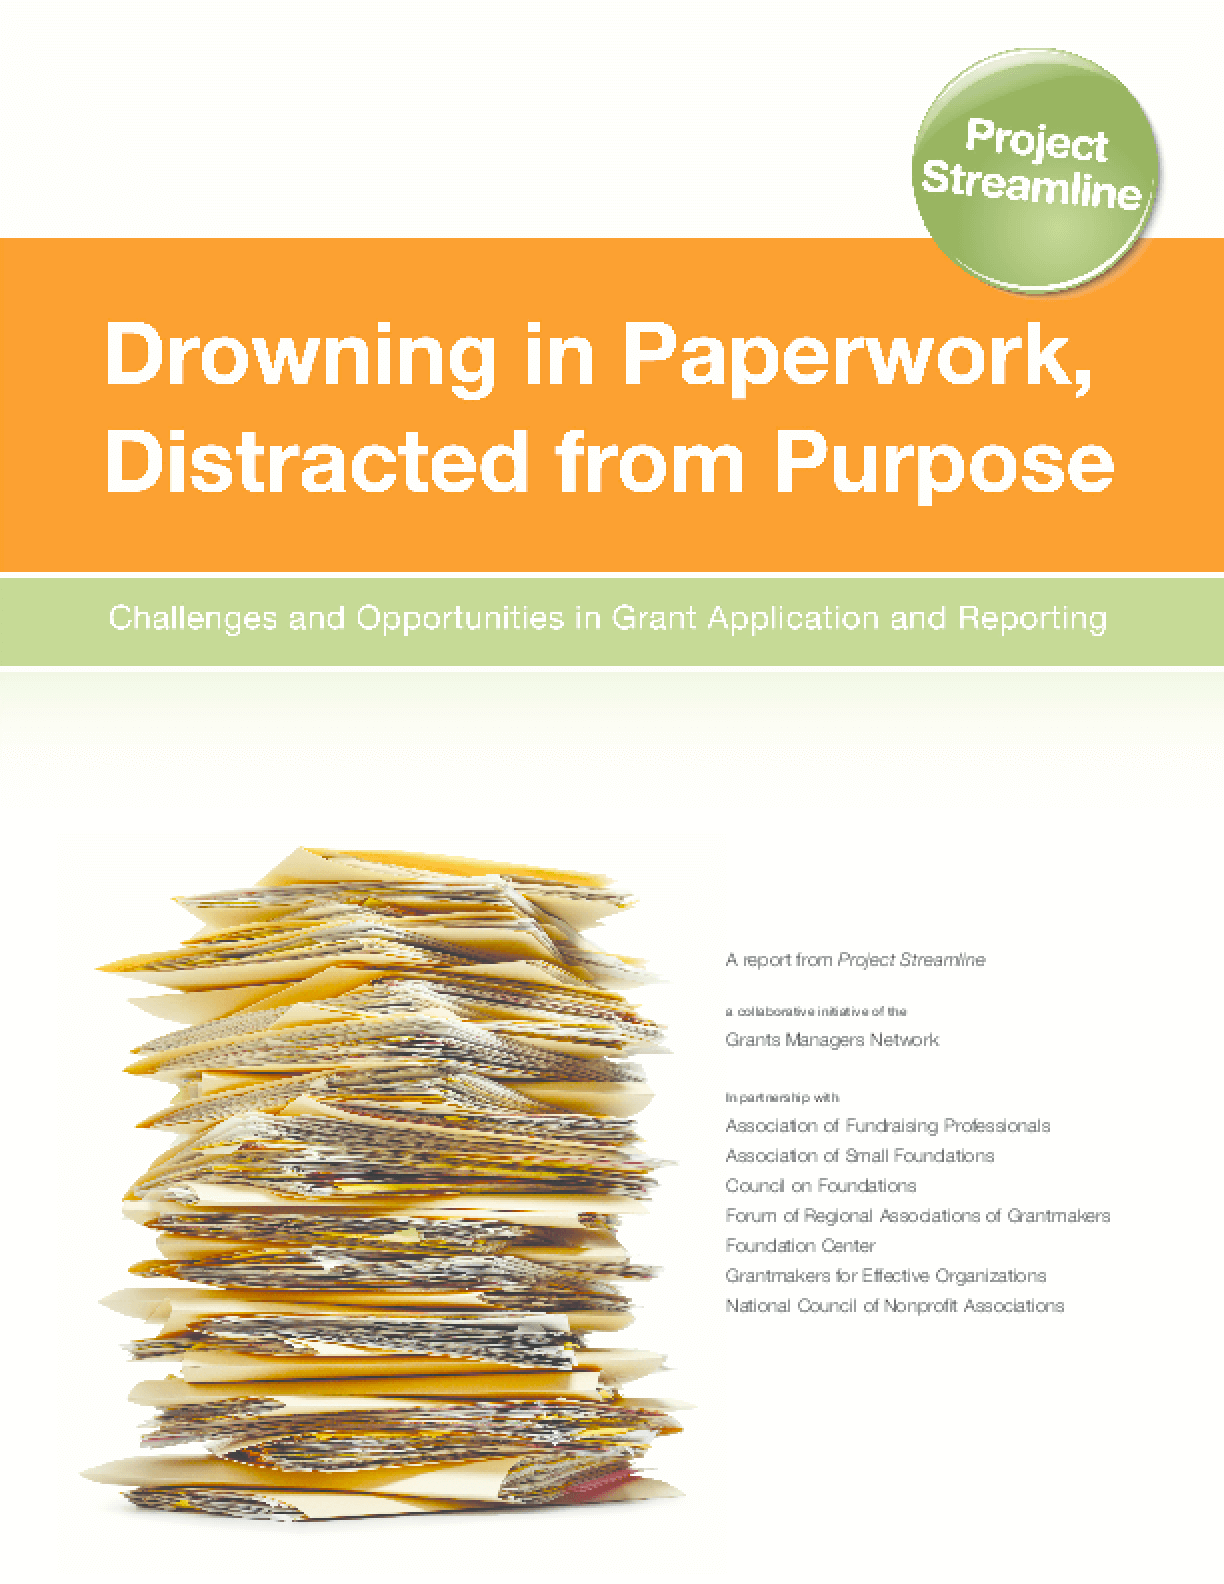 Drowning in Paperwork, Distracted From Purpose